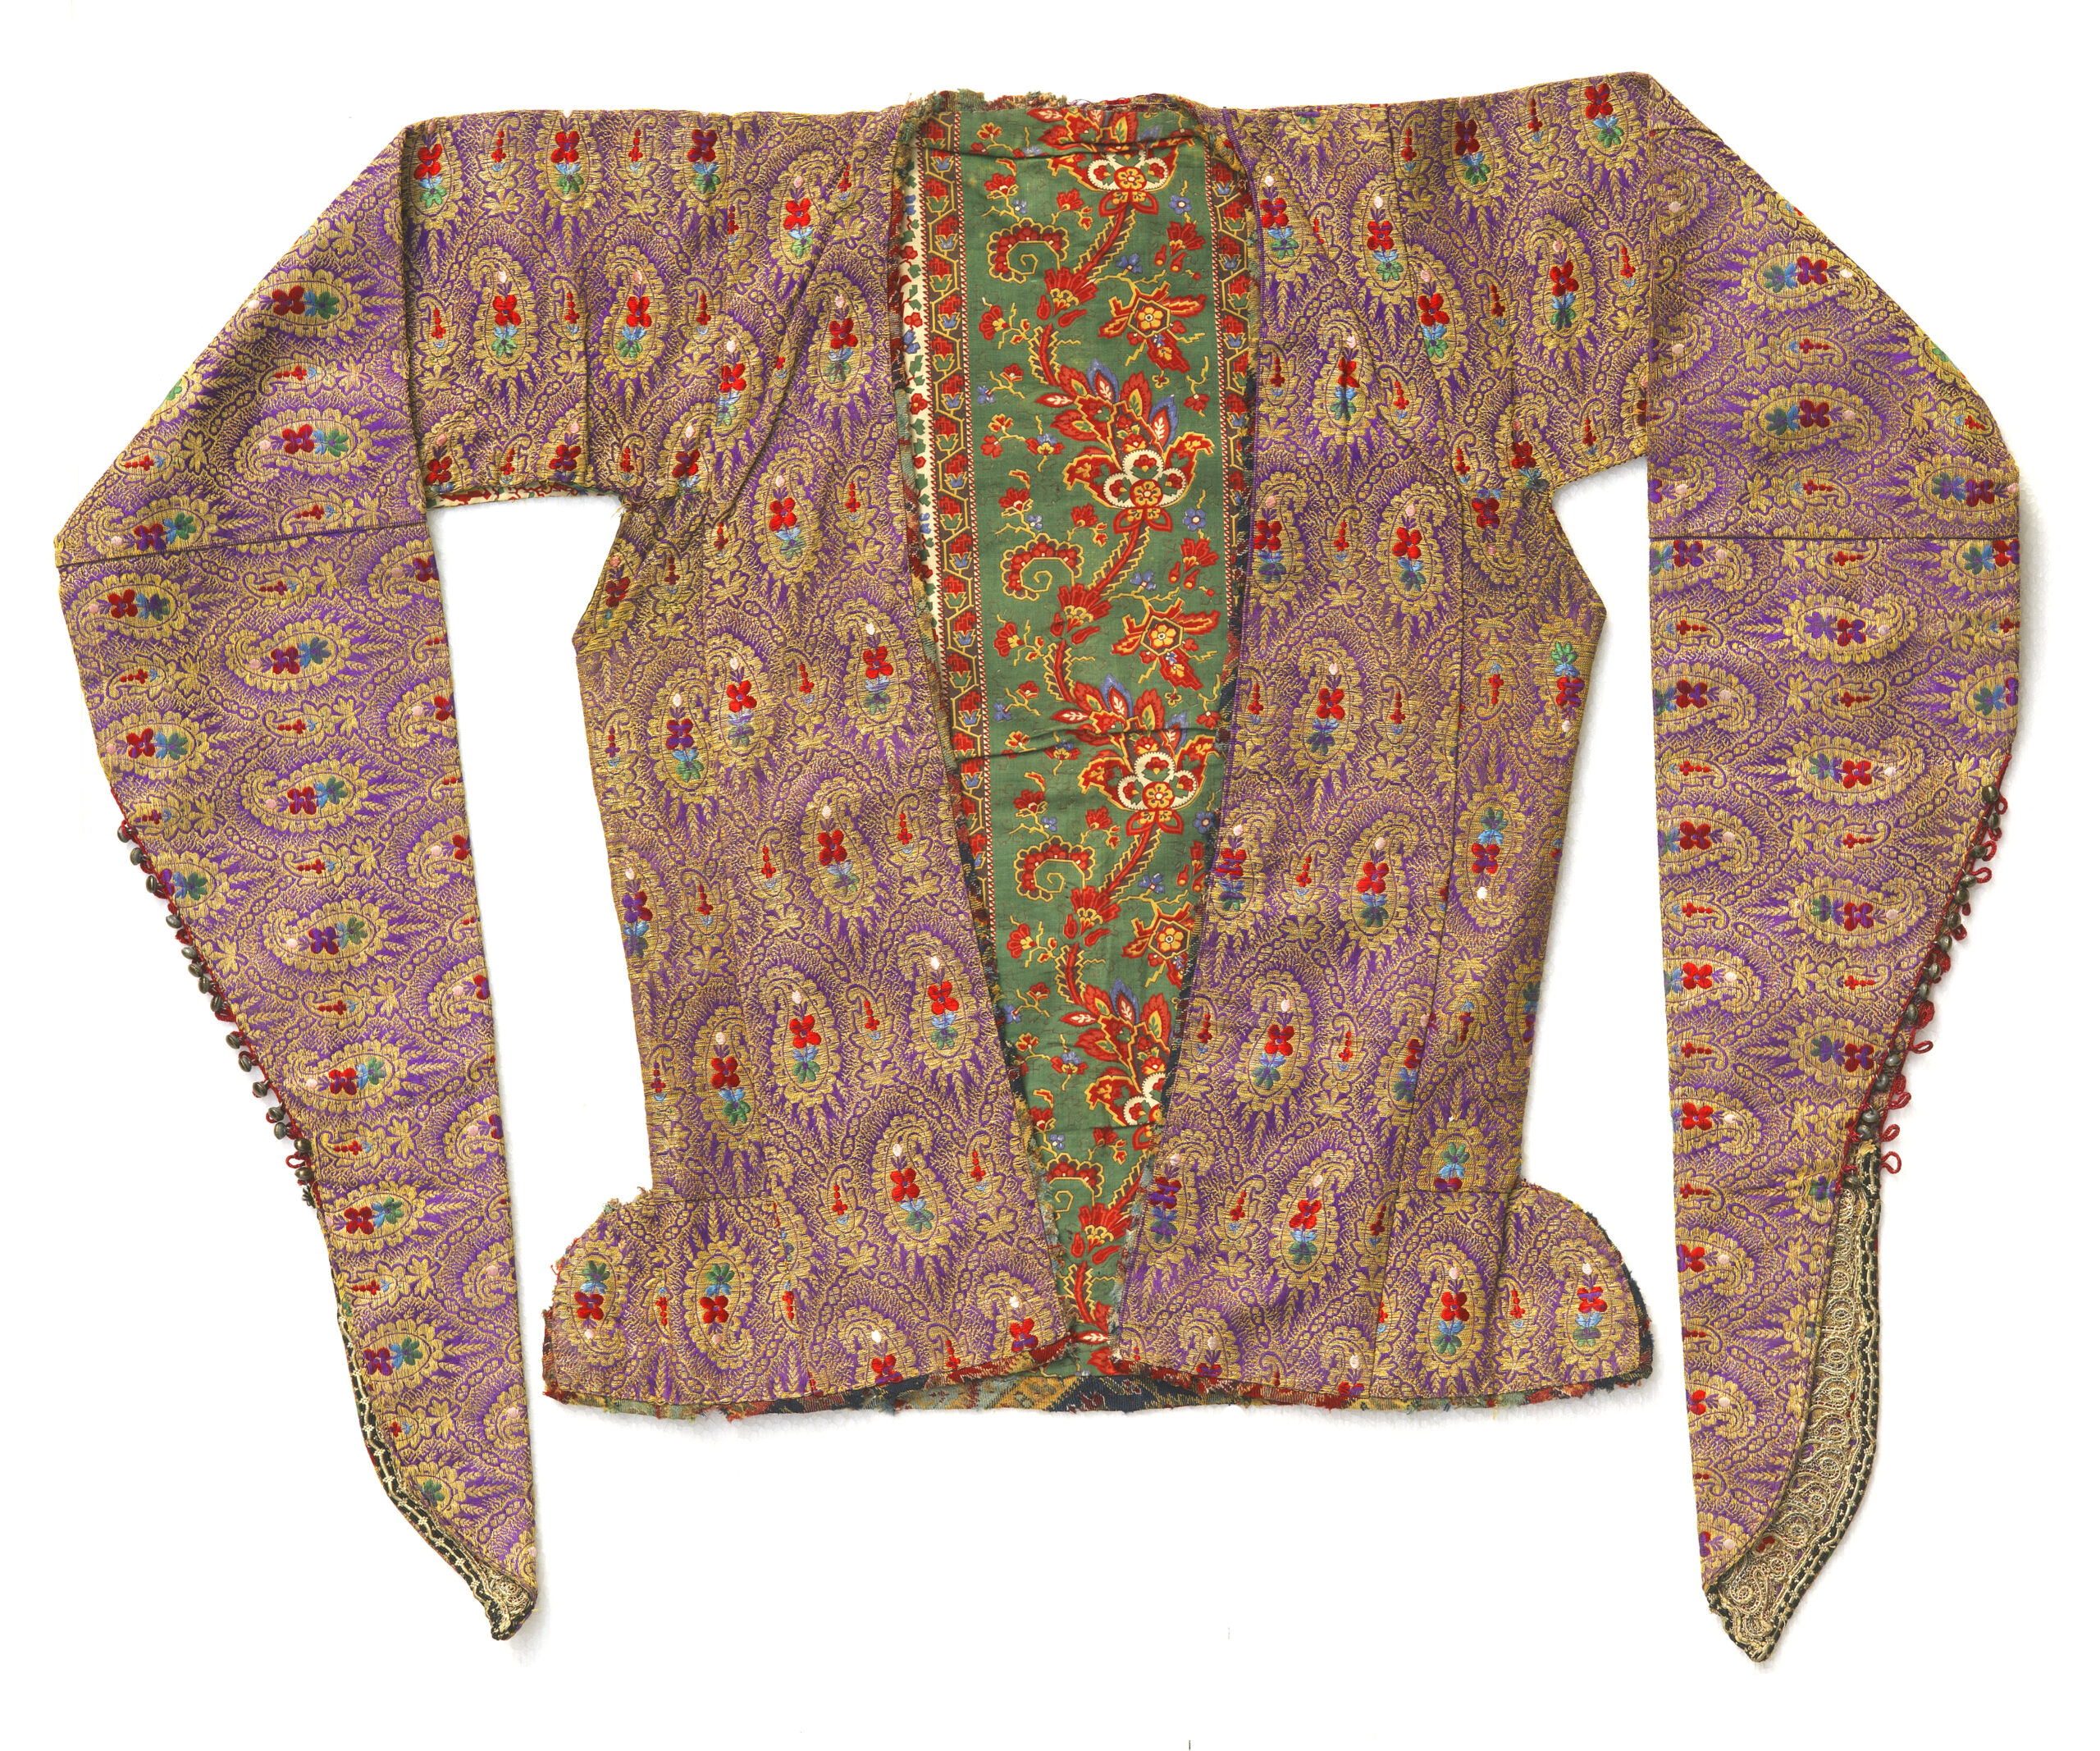 1 Woman's jacket, Esfahan, Iran, mid-19th century. Zarbaft silk woven with a design of repeated boteh motifs and a printed cotton lining imported from Russia or England. Silk, gold thread, sleeve ends with tiny buttons, trimmed with gold lace. All images, The Ramezani Family Collection